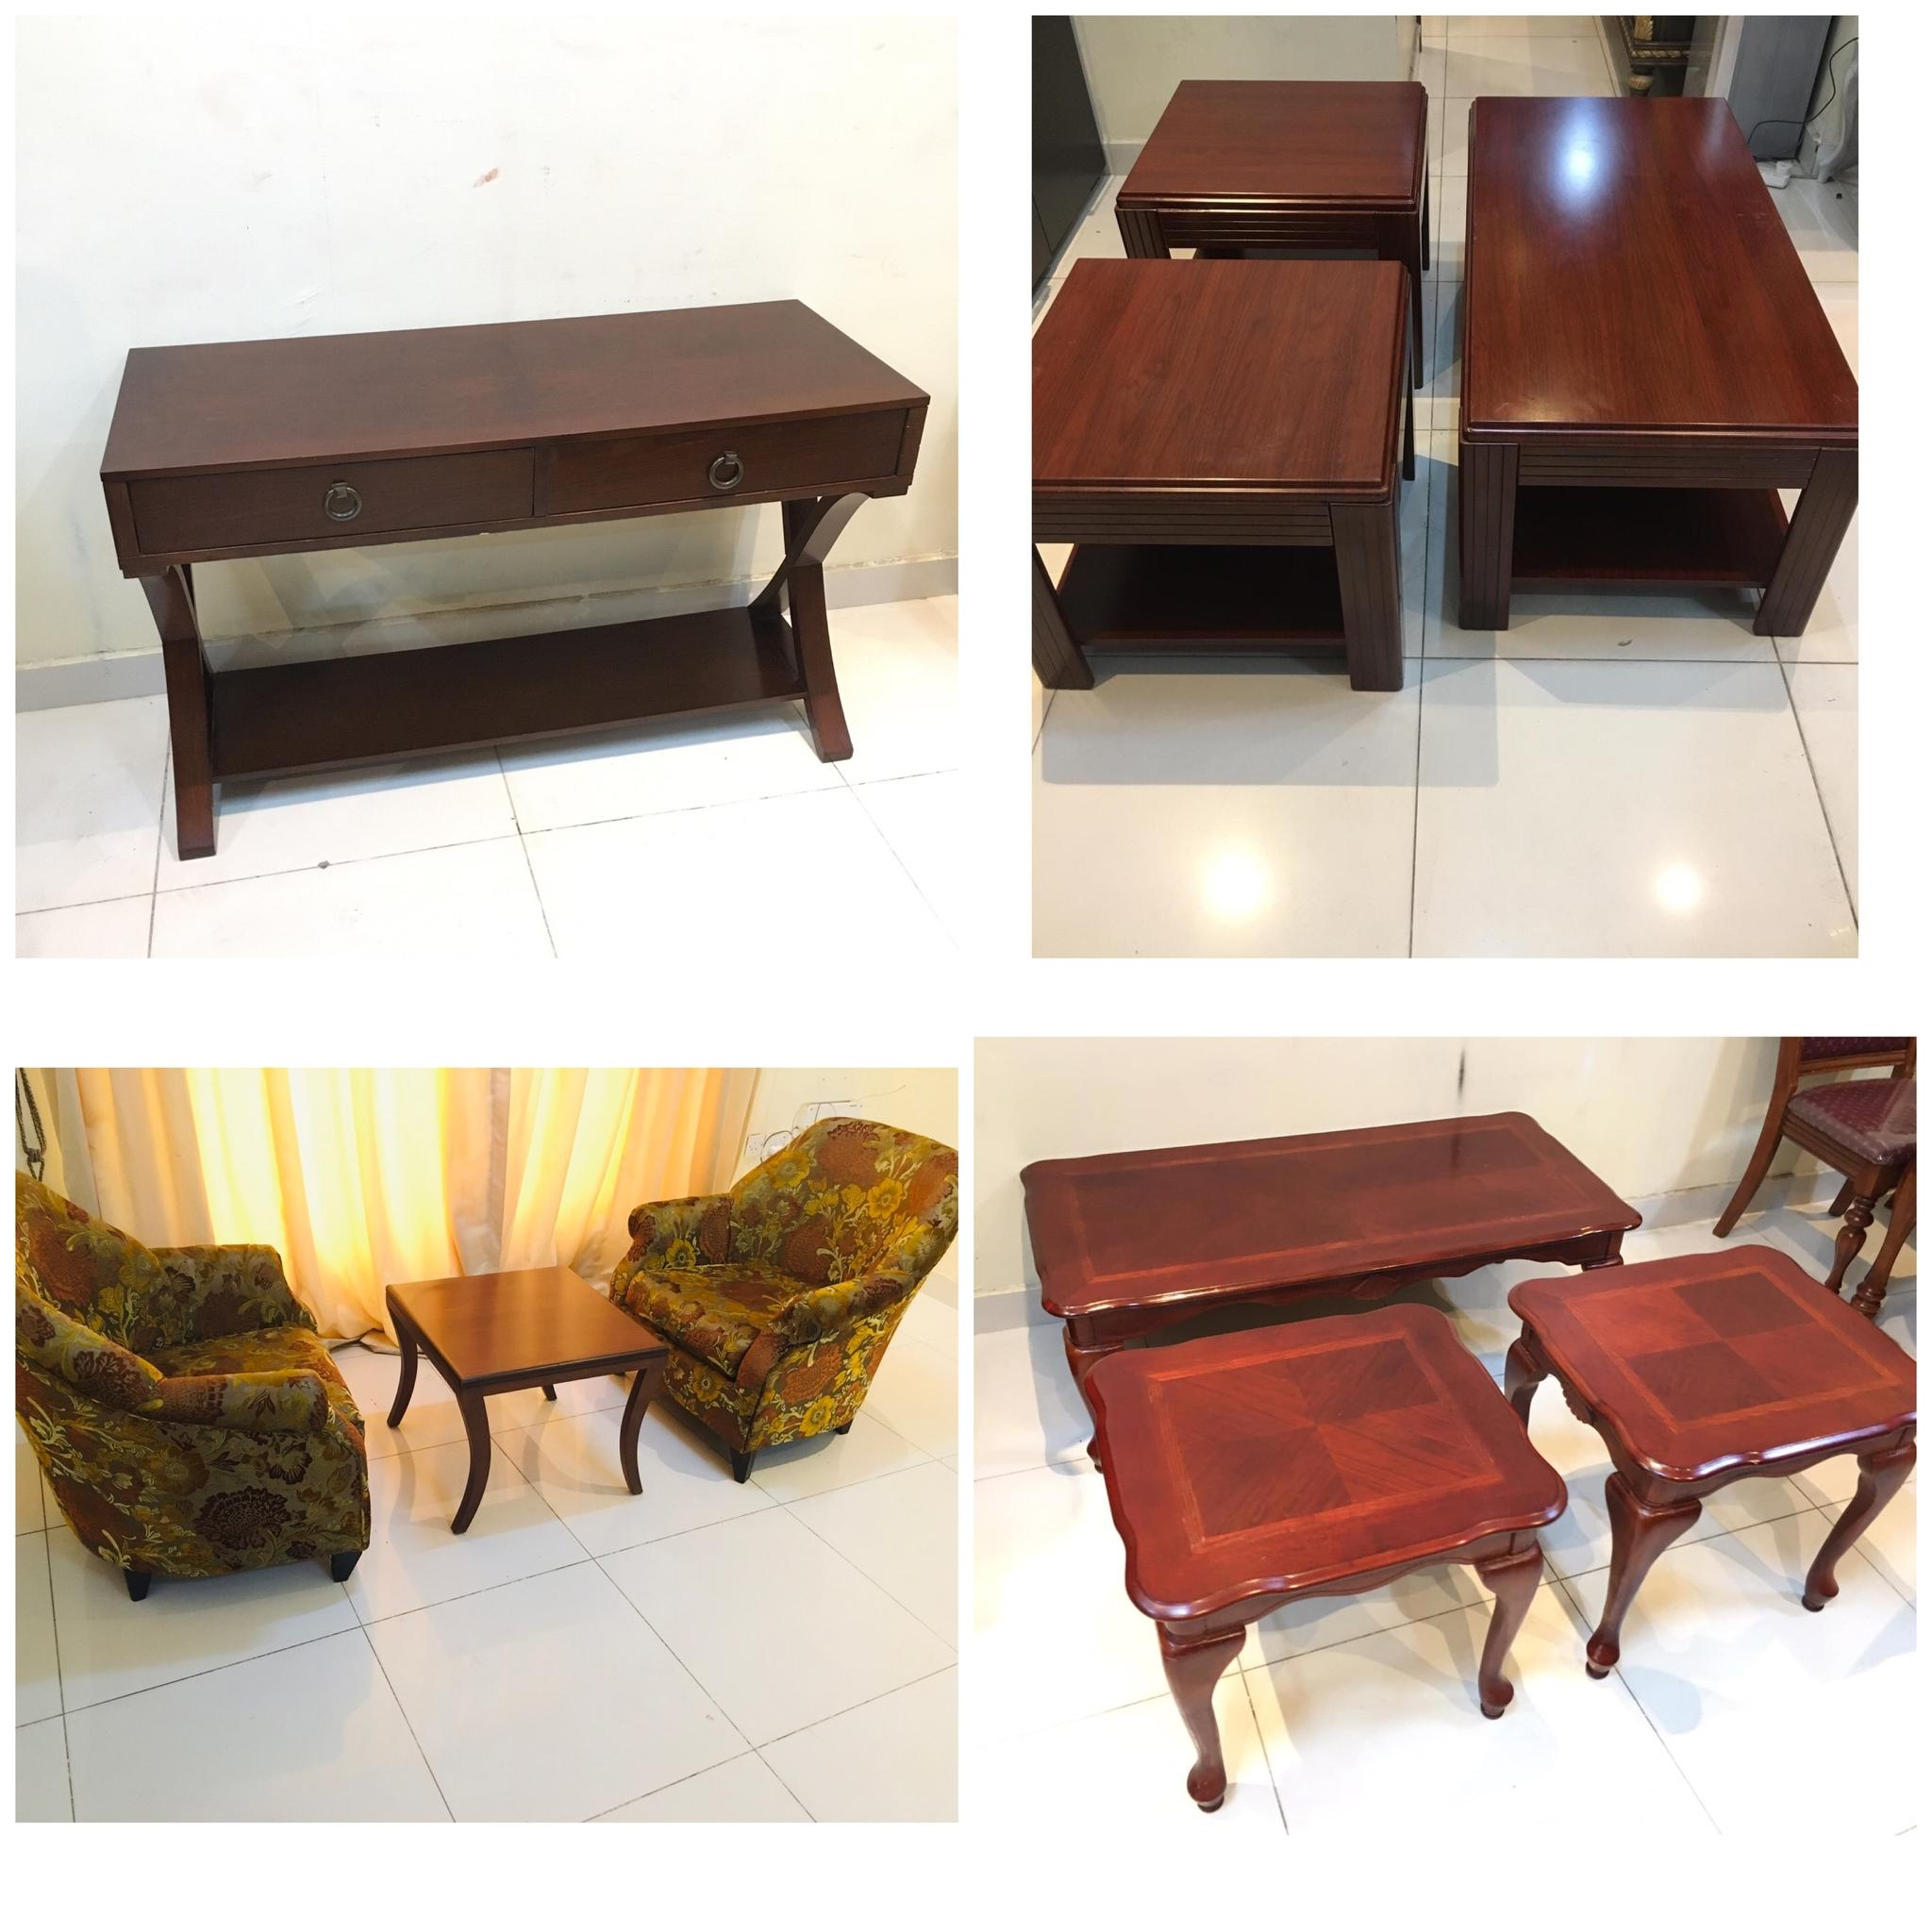 Some Villa items for sale Used very good condition